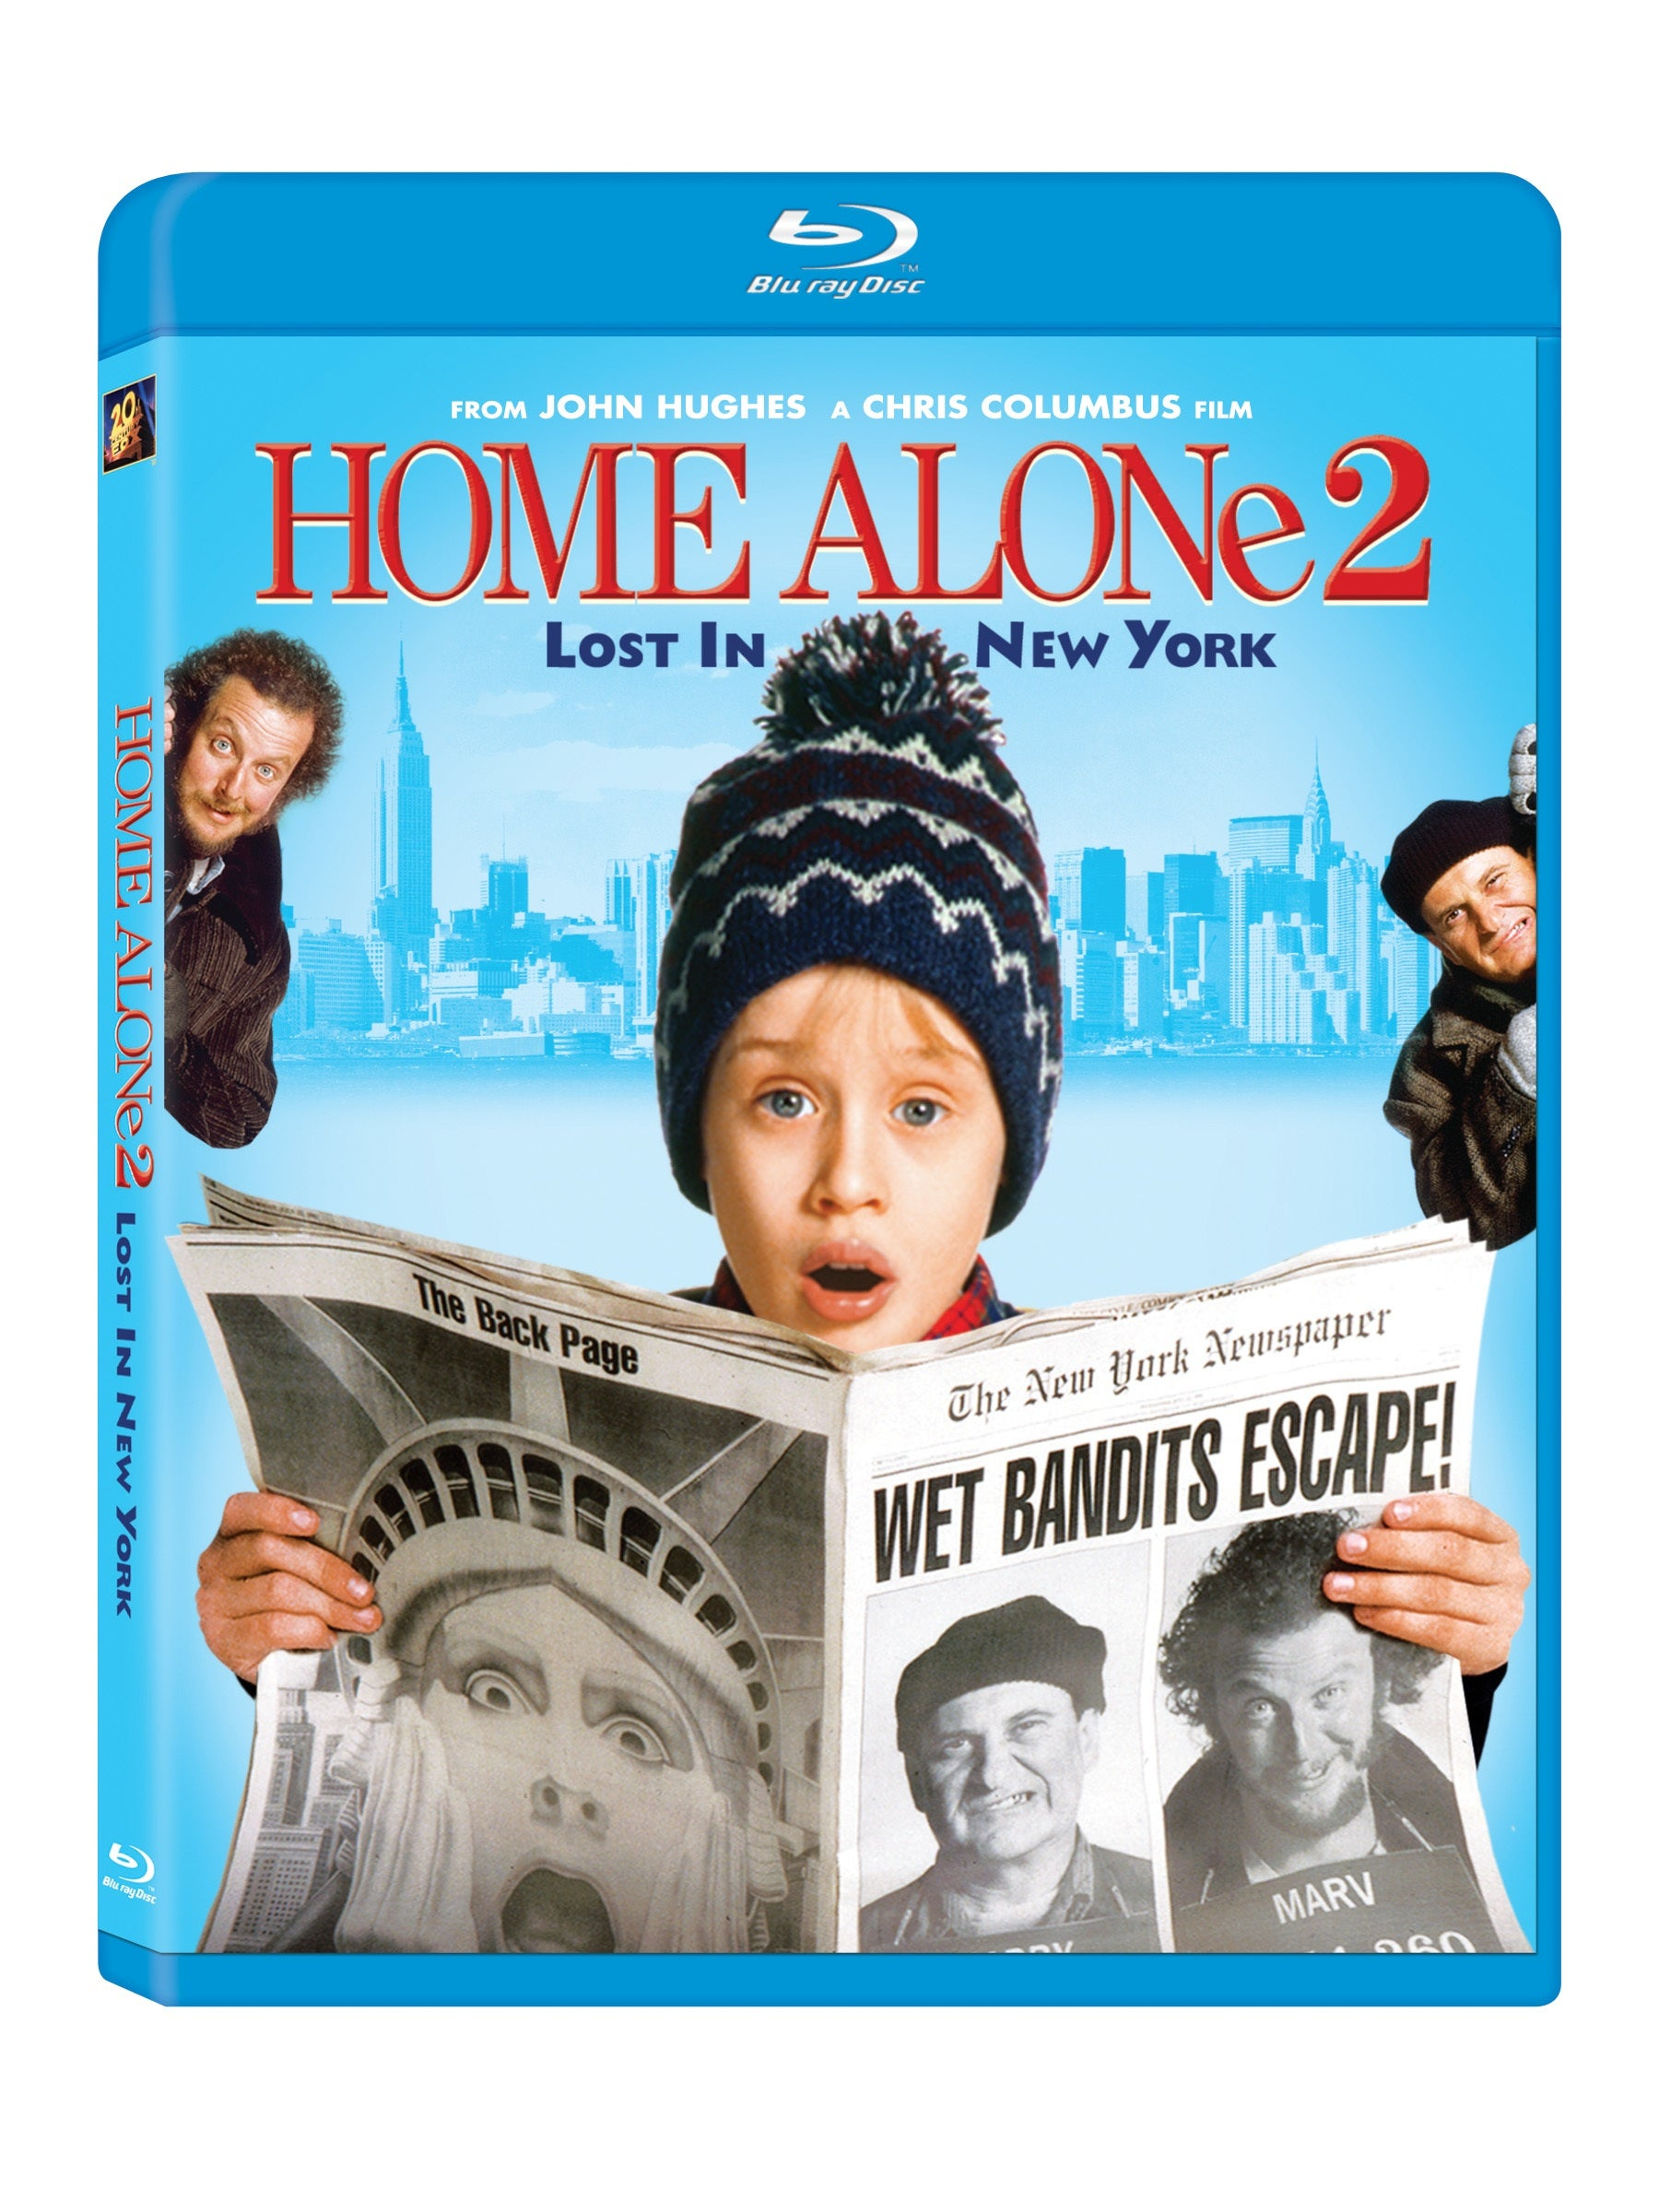 Enchanting Tamil Home Alone 2 Full Movie New York Home Alone 2 Full Movie English Hd Home Alone Lost curbed Home Alone 2 Full Movie